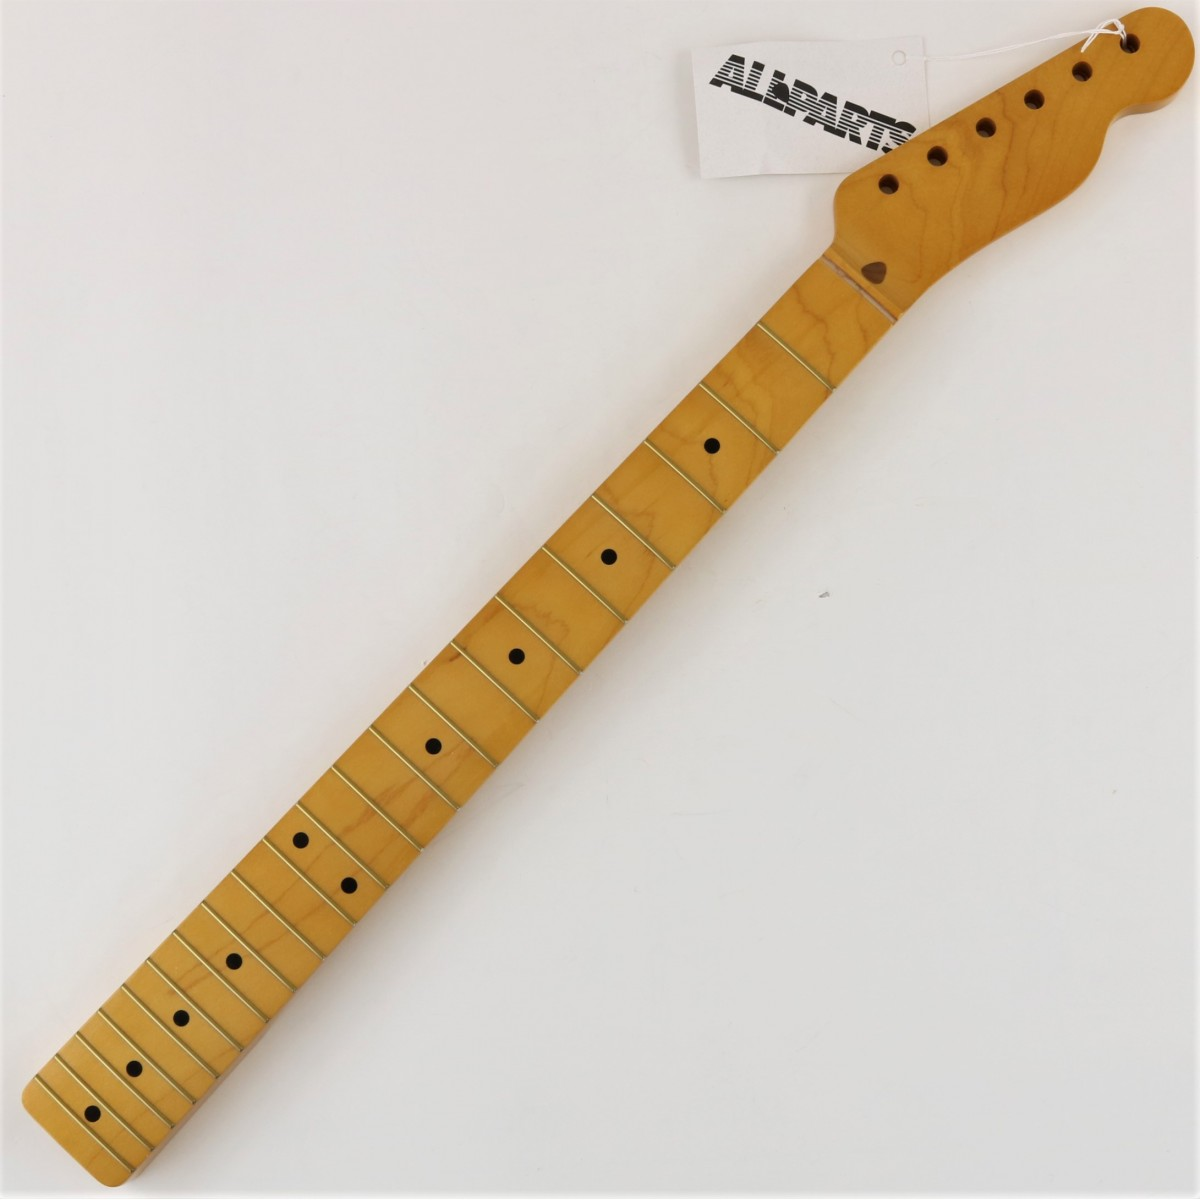 Suhr Ml Standard Bridge White